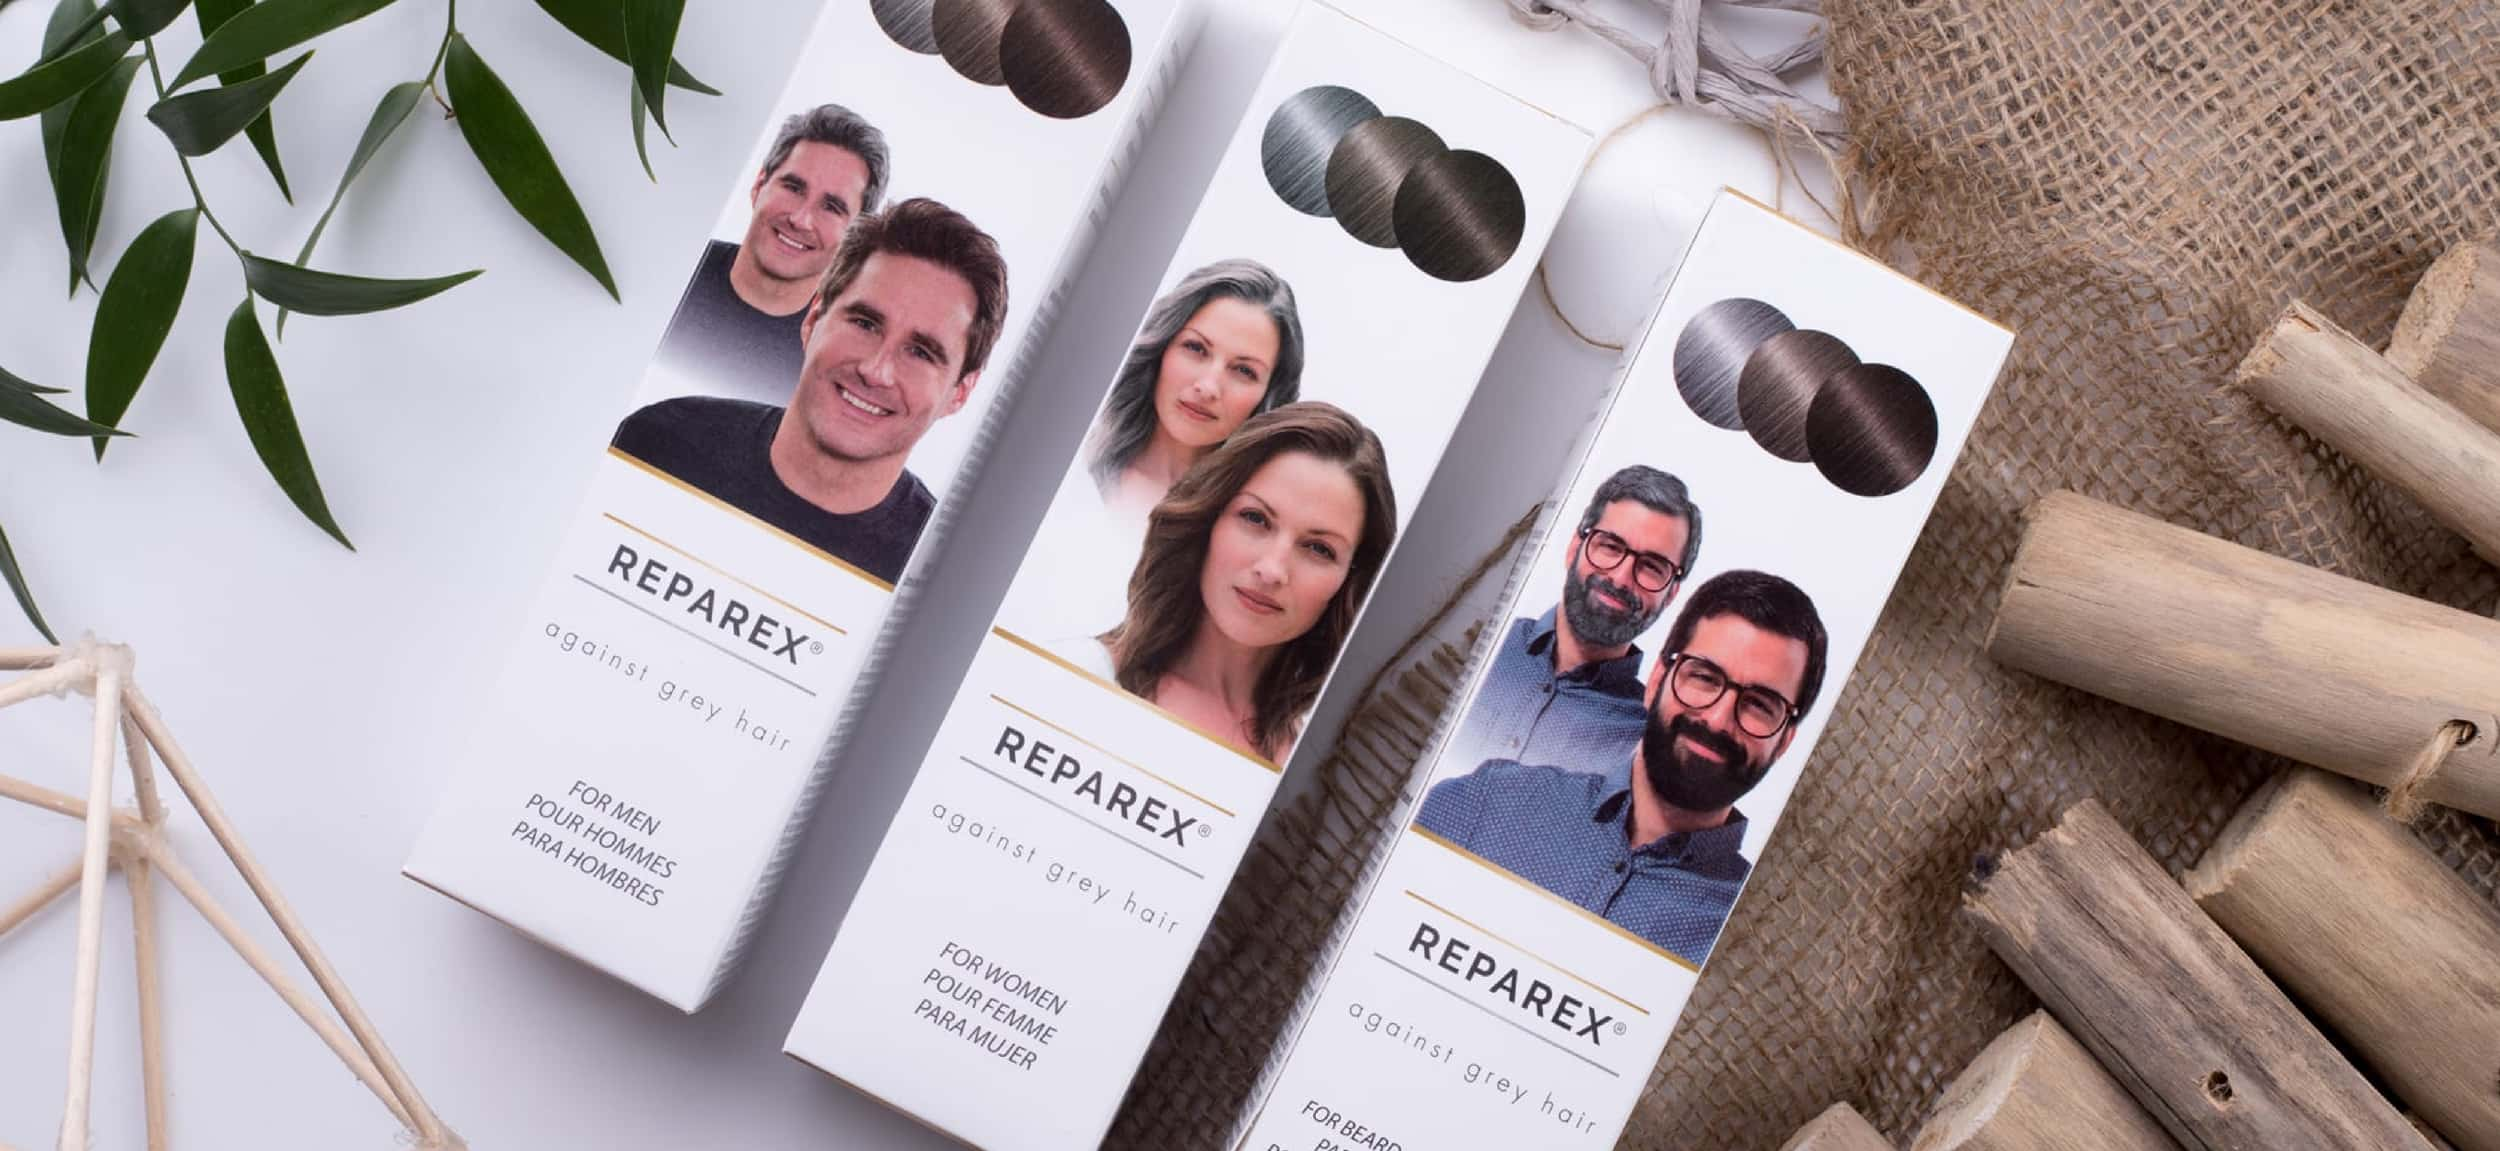 reparex-against-grey-hair-banner